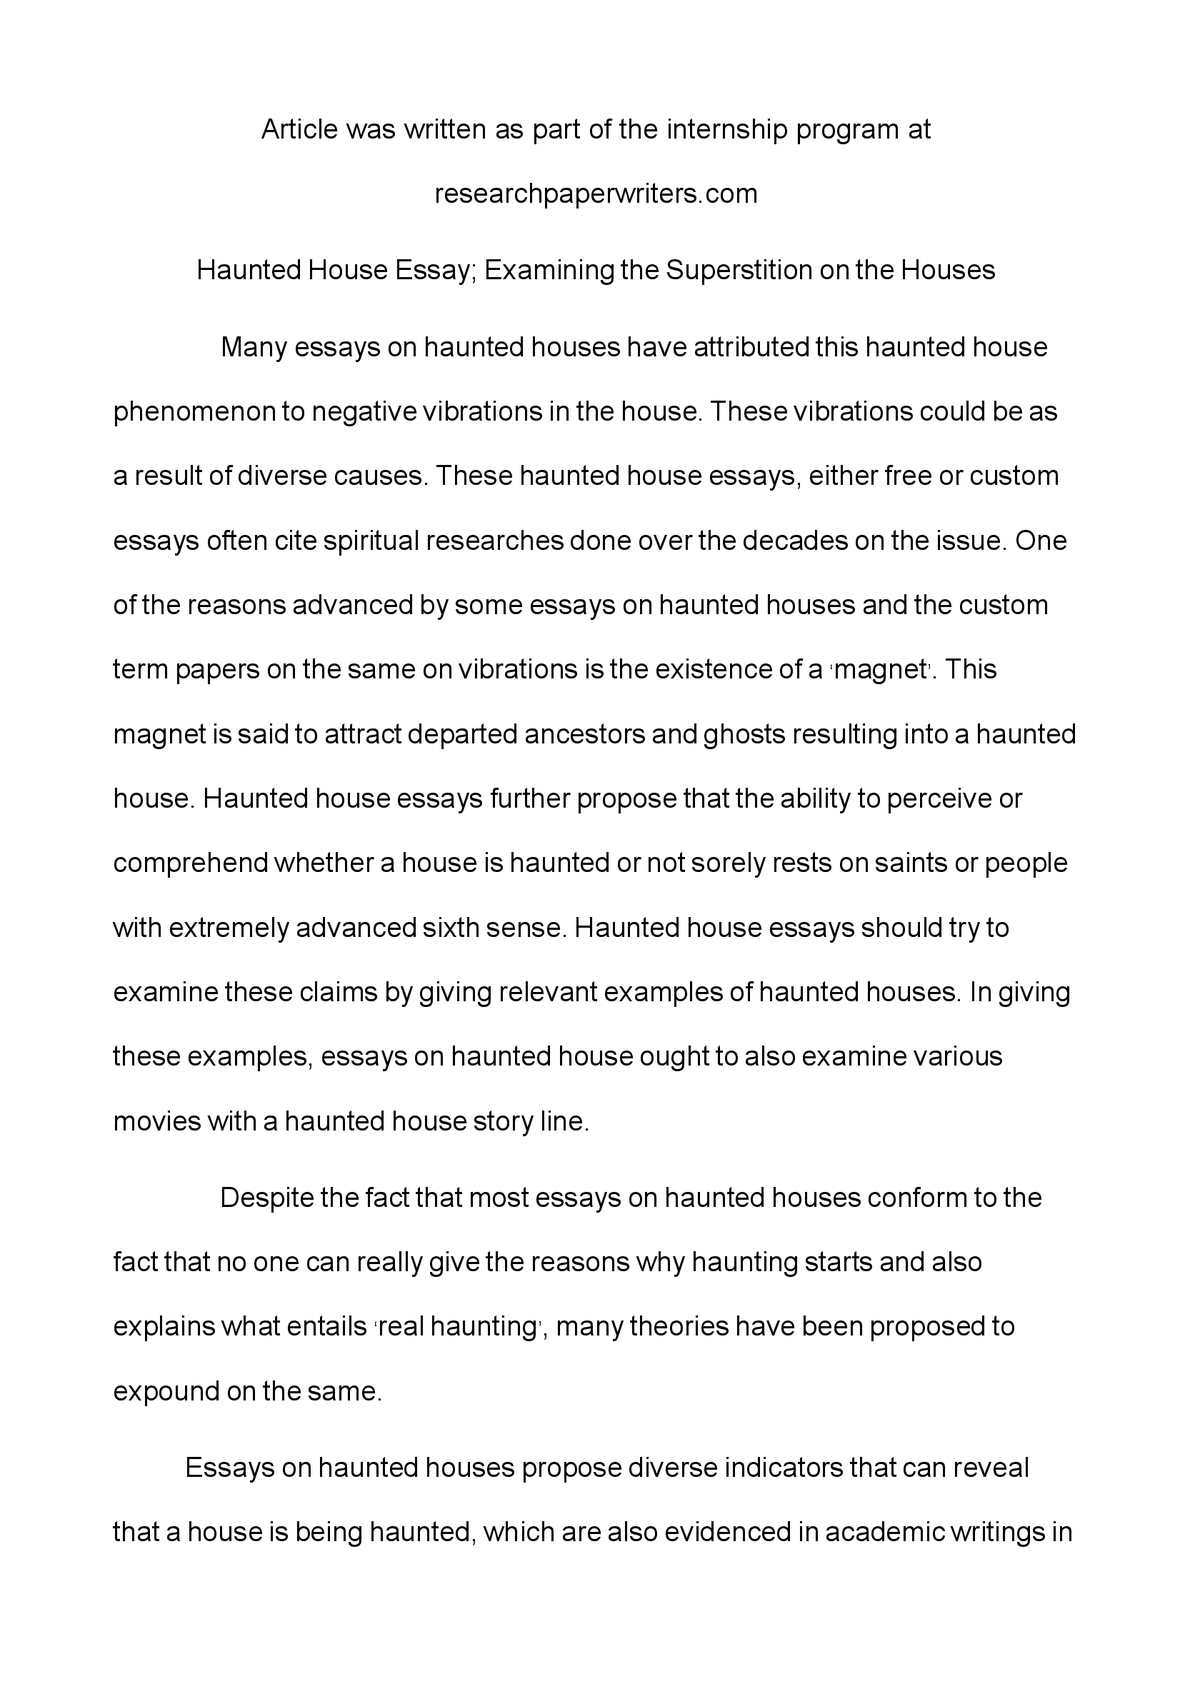 superstition essay calamatildecopyo haunted house essay examining the superstition on the